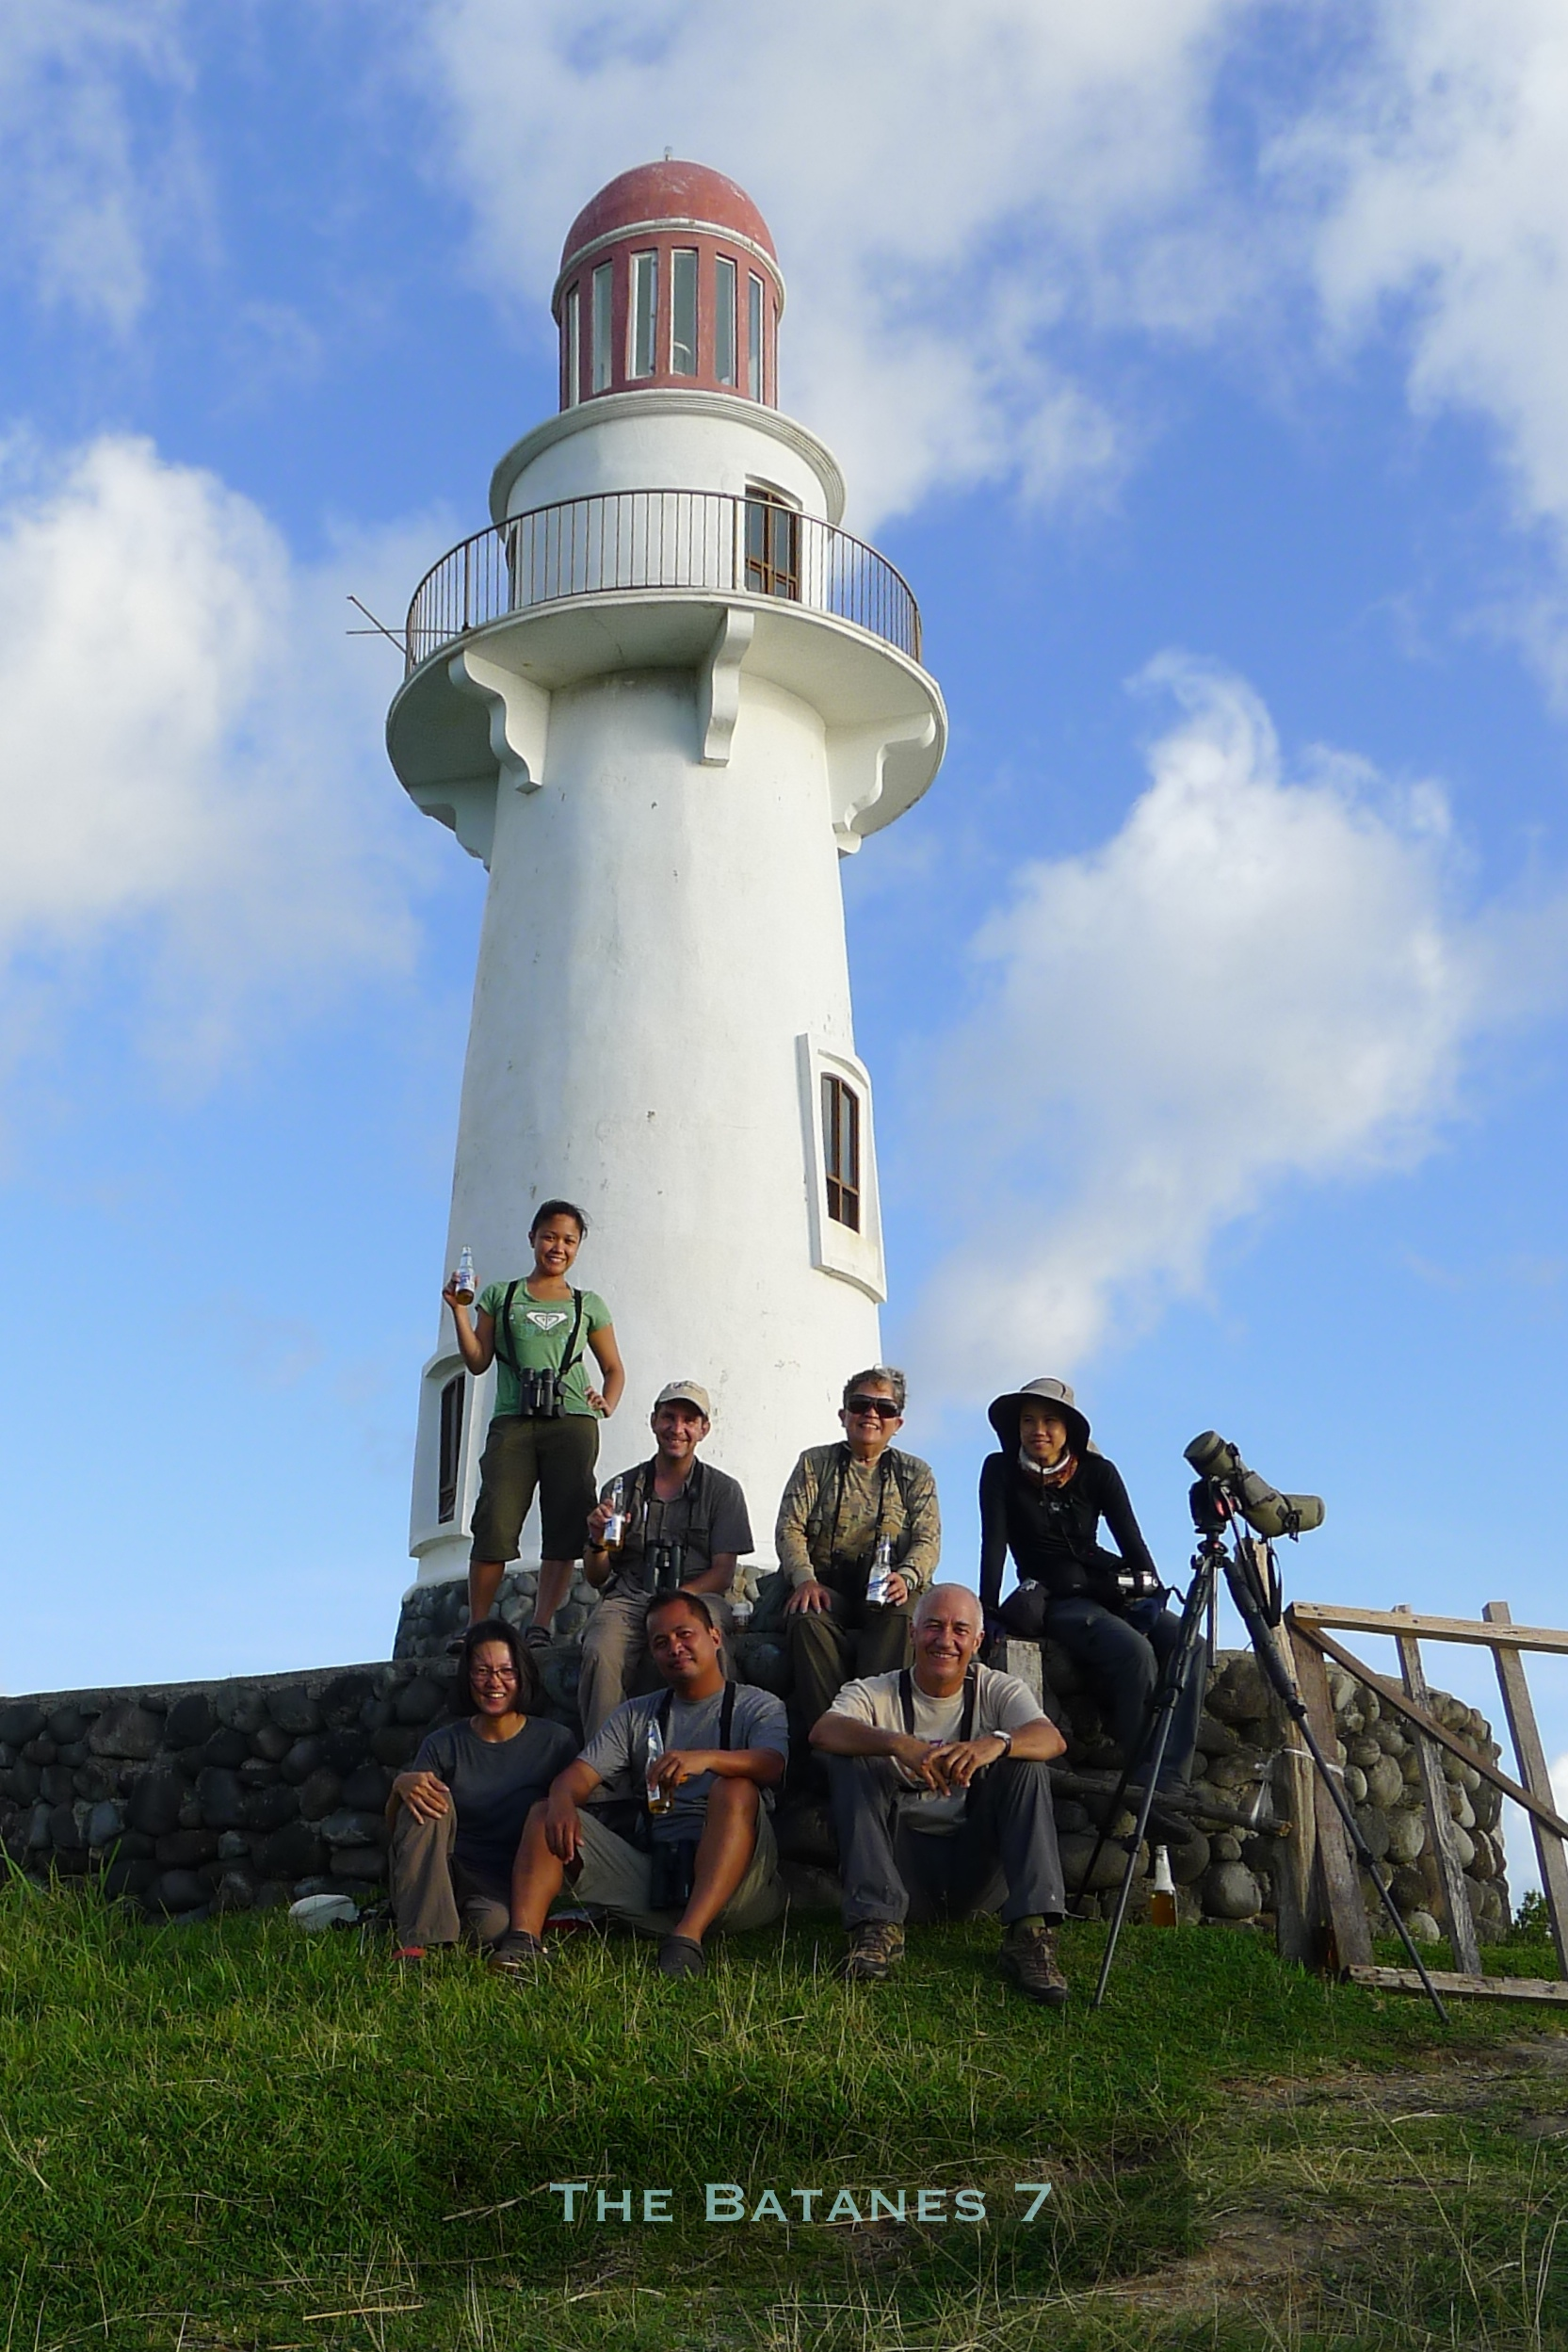 The Batanes 7. Back Row: Kitty Arce, Rob Hutchinson, Ixi Mapua, Irene Dy Front Row: Sylvia Ramos, Tonji Ramos, Christian Perez